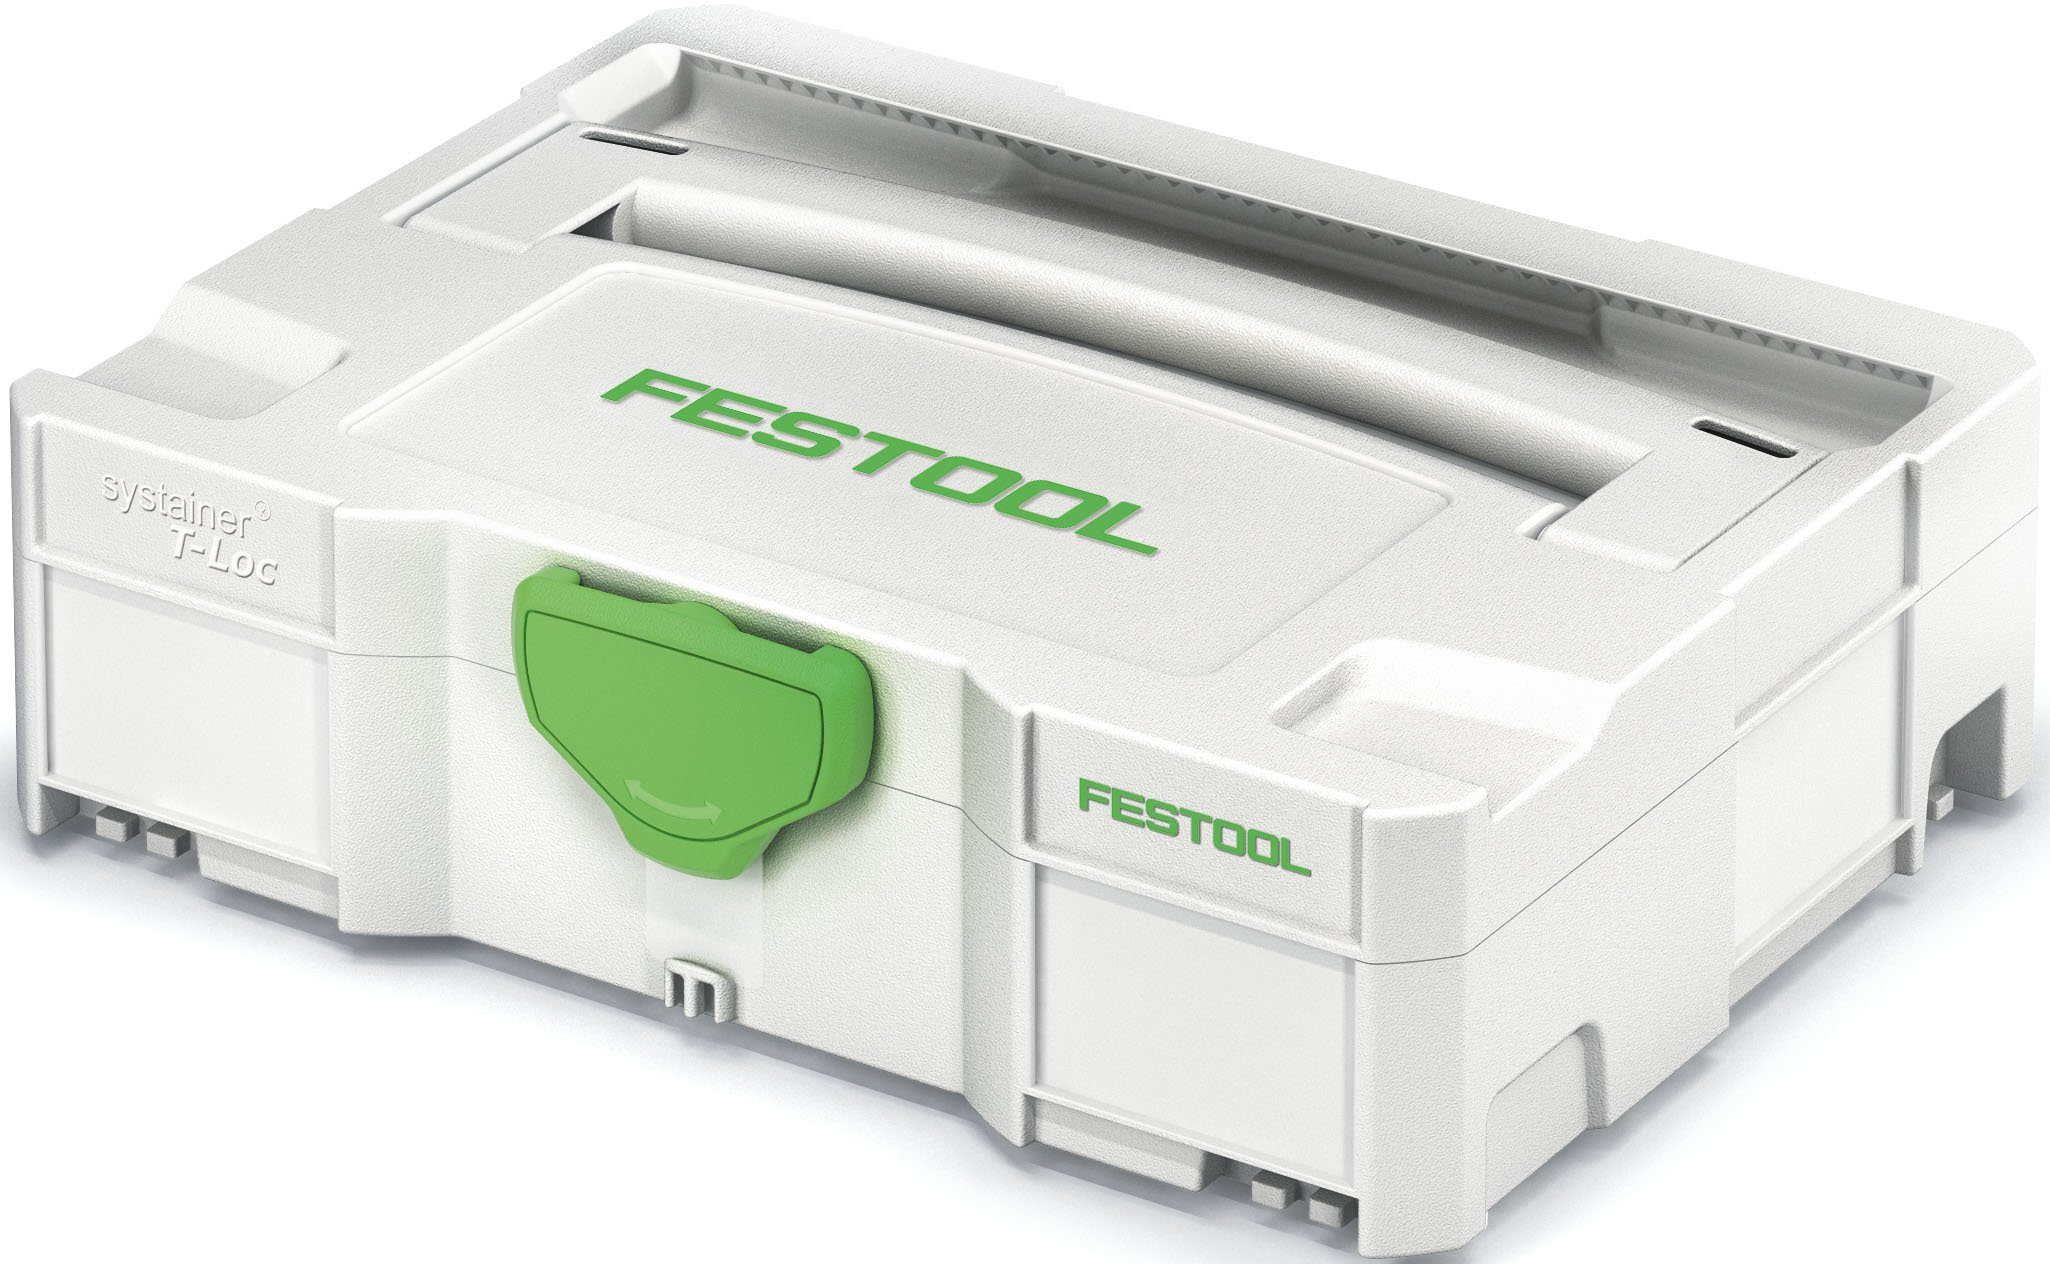 Festool 497563 Systainer SYS 1 Tool And Accessory Storage Unit by Festool (Image #1)